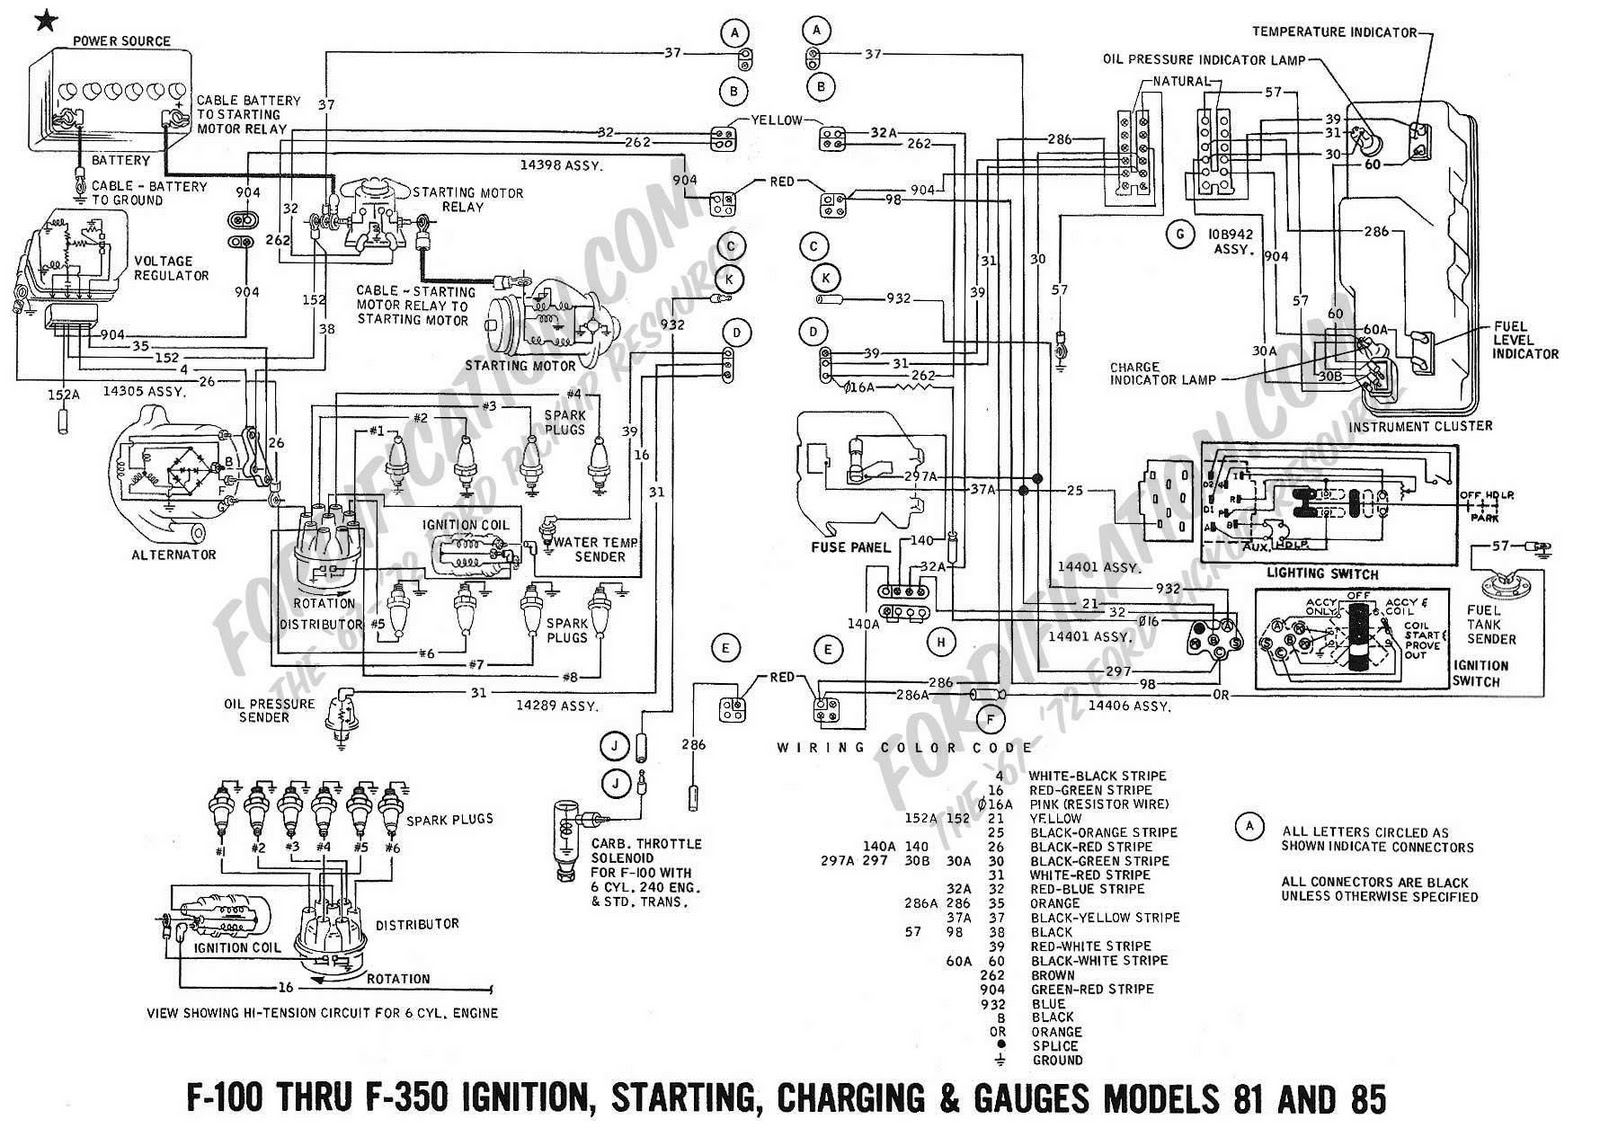 Ford Galaxie Cluster Wiring Diagram Auto Electrical P90 Pickup Diagrams 1961 Dodge Truck 1969 F100